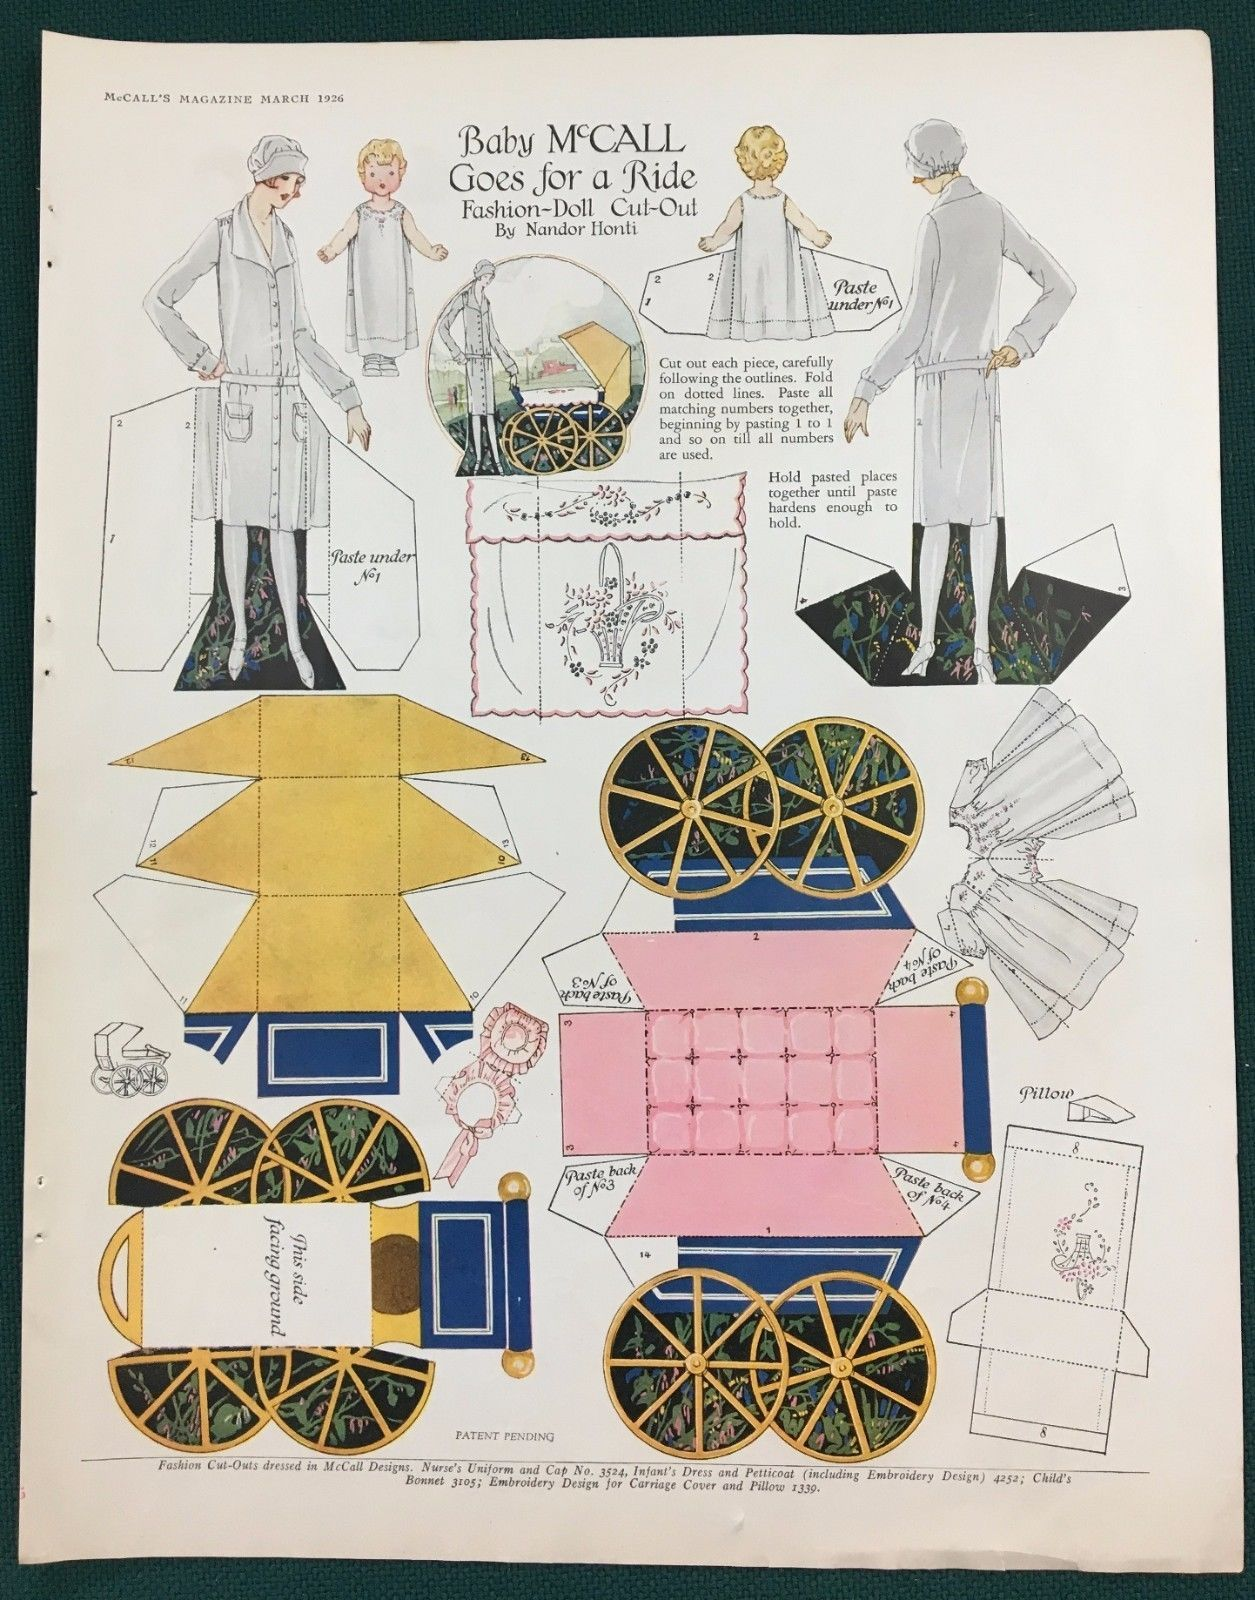 1920s Nándor Honti paper doll illustrating McCall's patterns - nurse uniform and cap 3524, infant dress and petticoat 4252, bonnet 3105, embroidery 1339 - in McCall's magazine